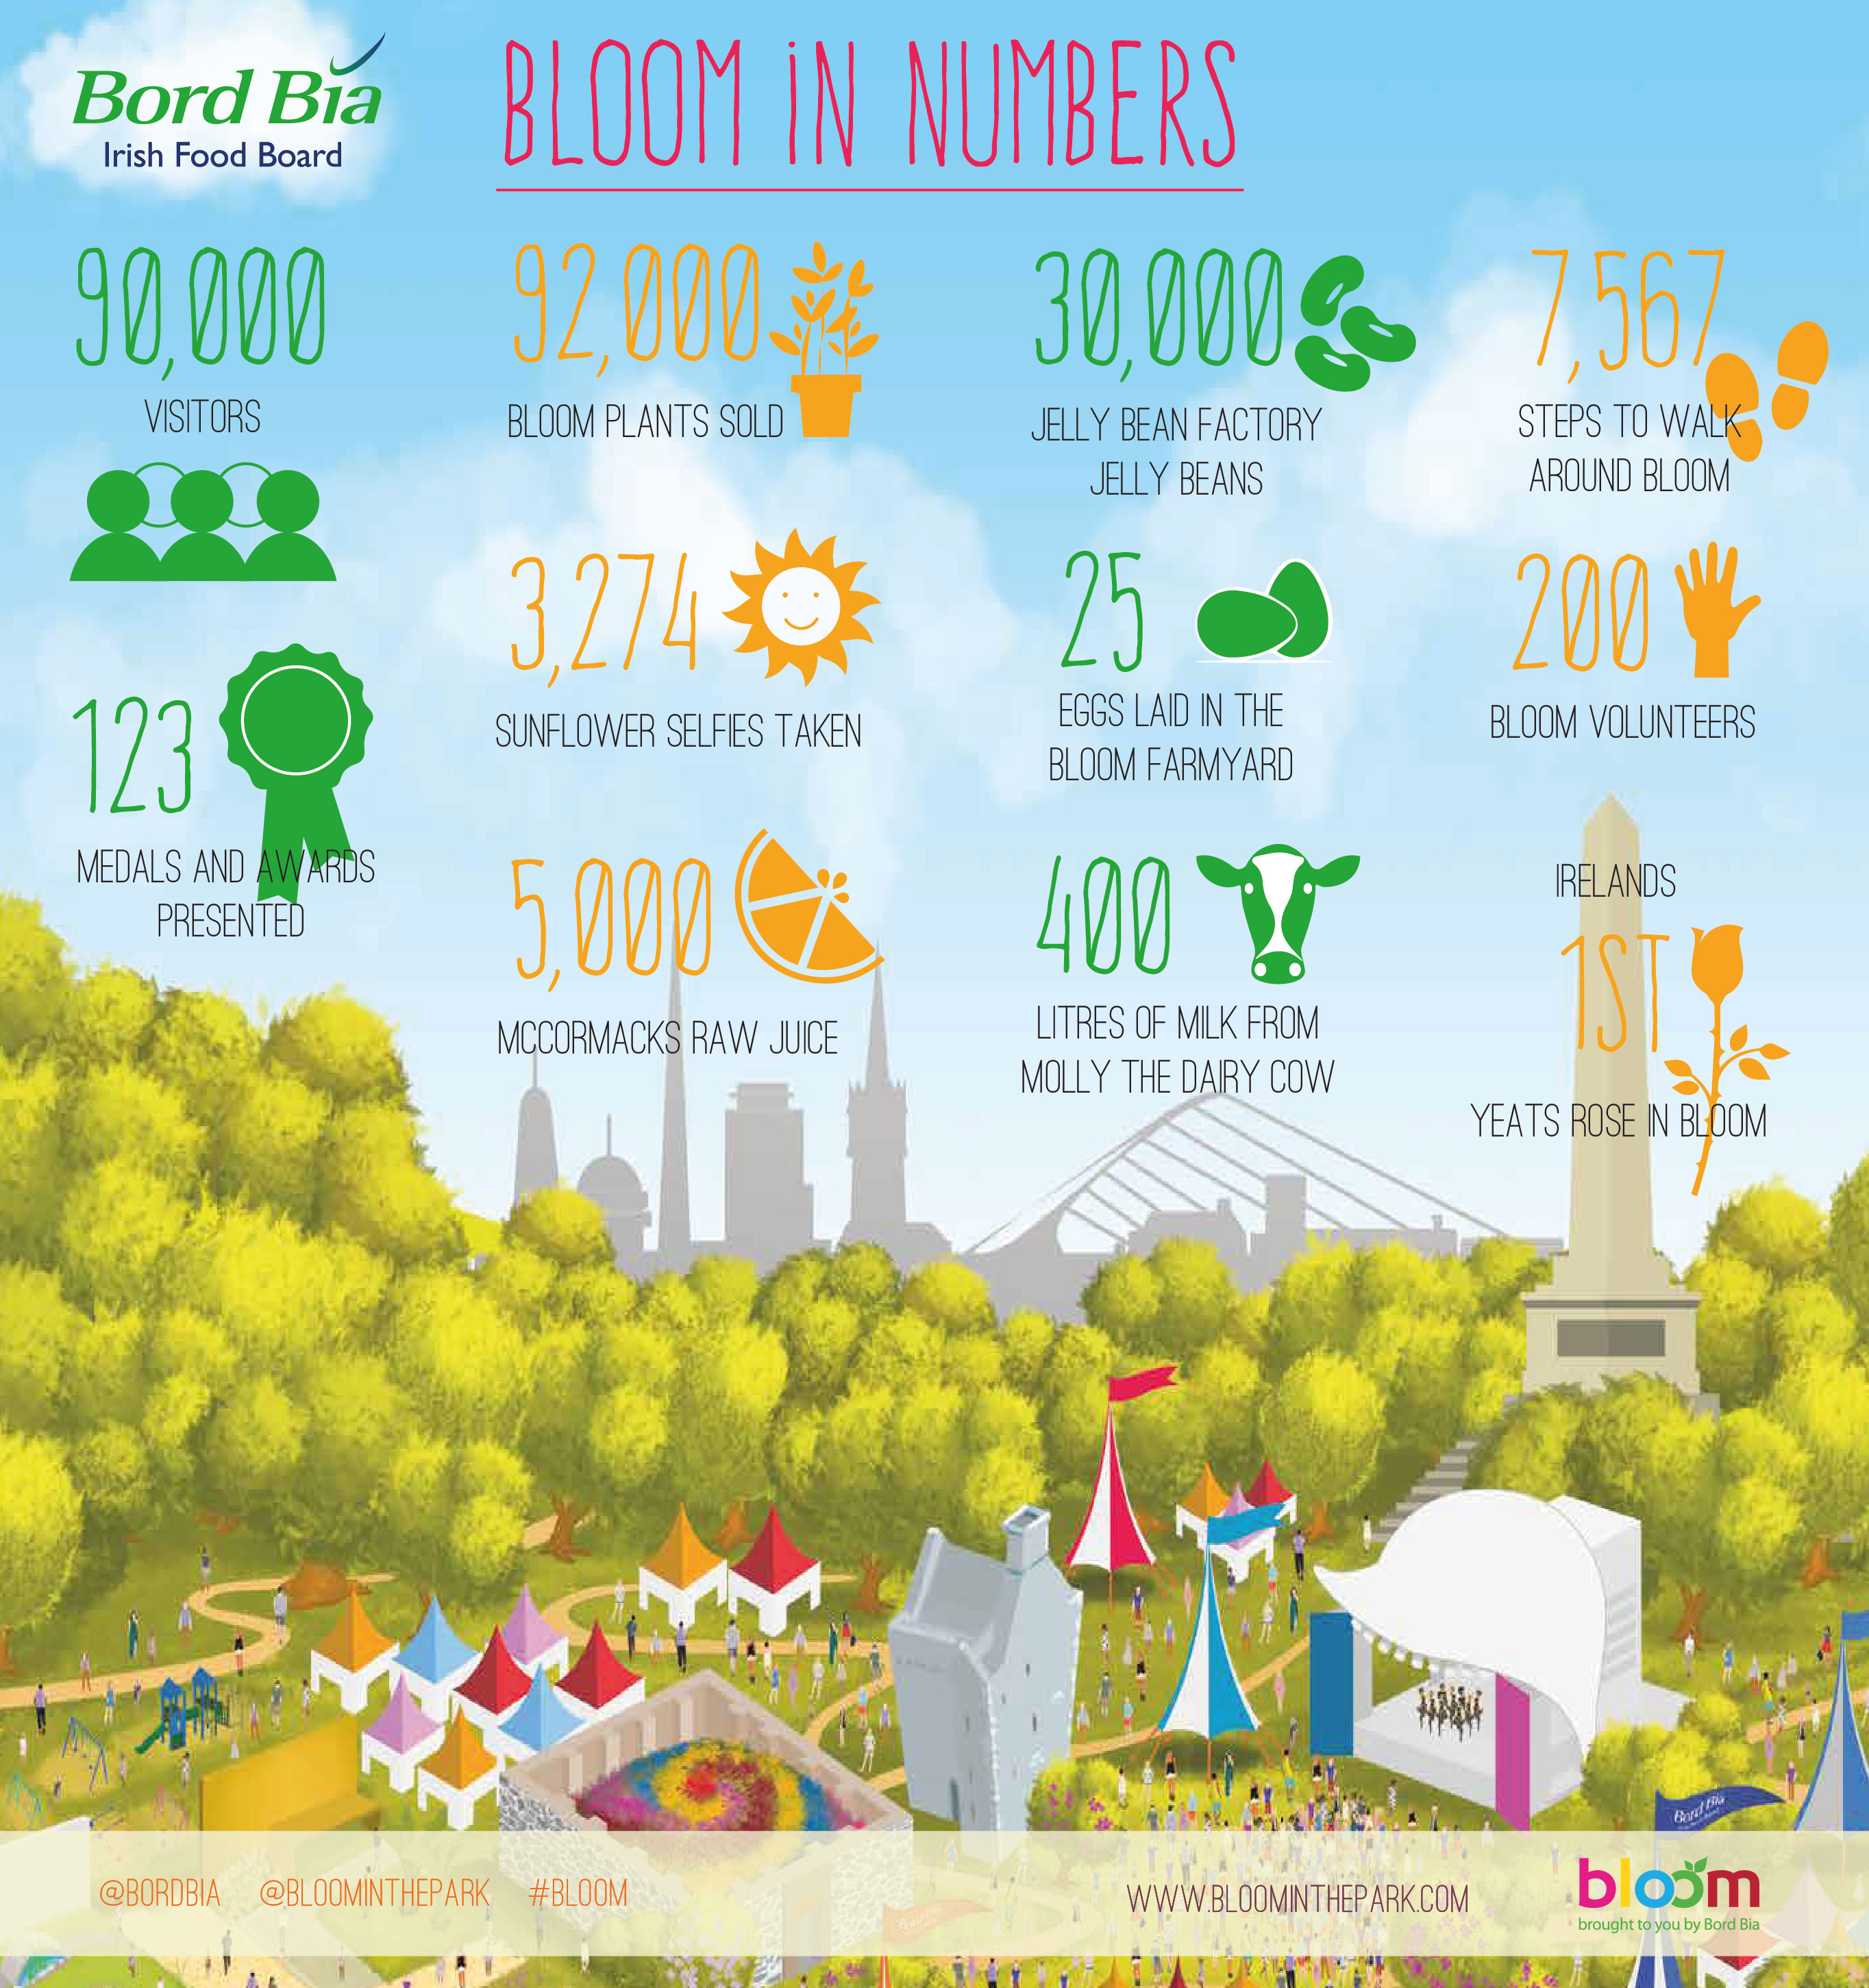 Bloom 2015 in numbers: Bord Bia